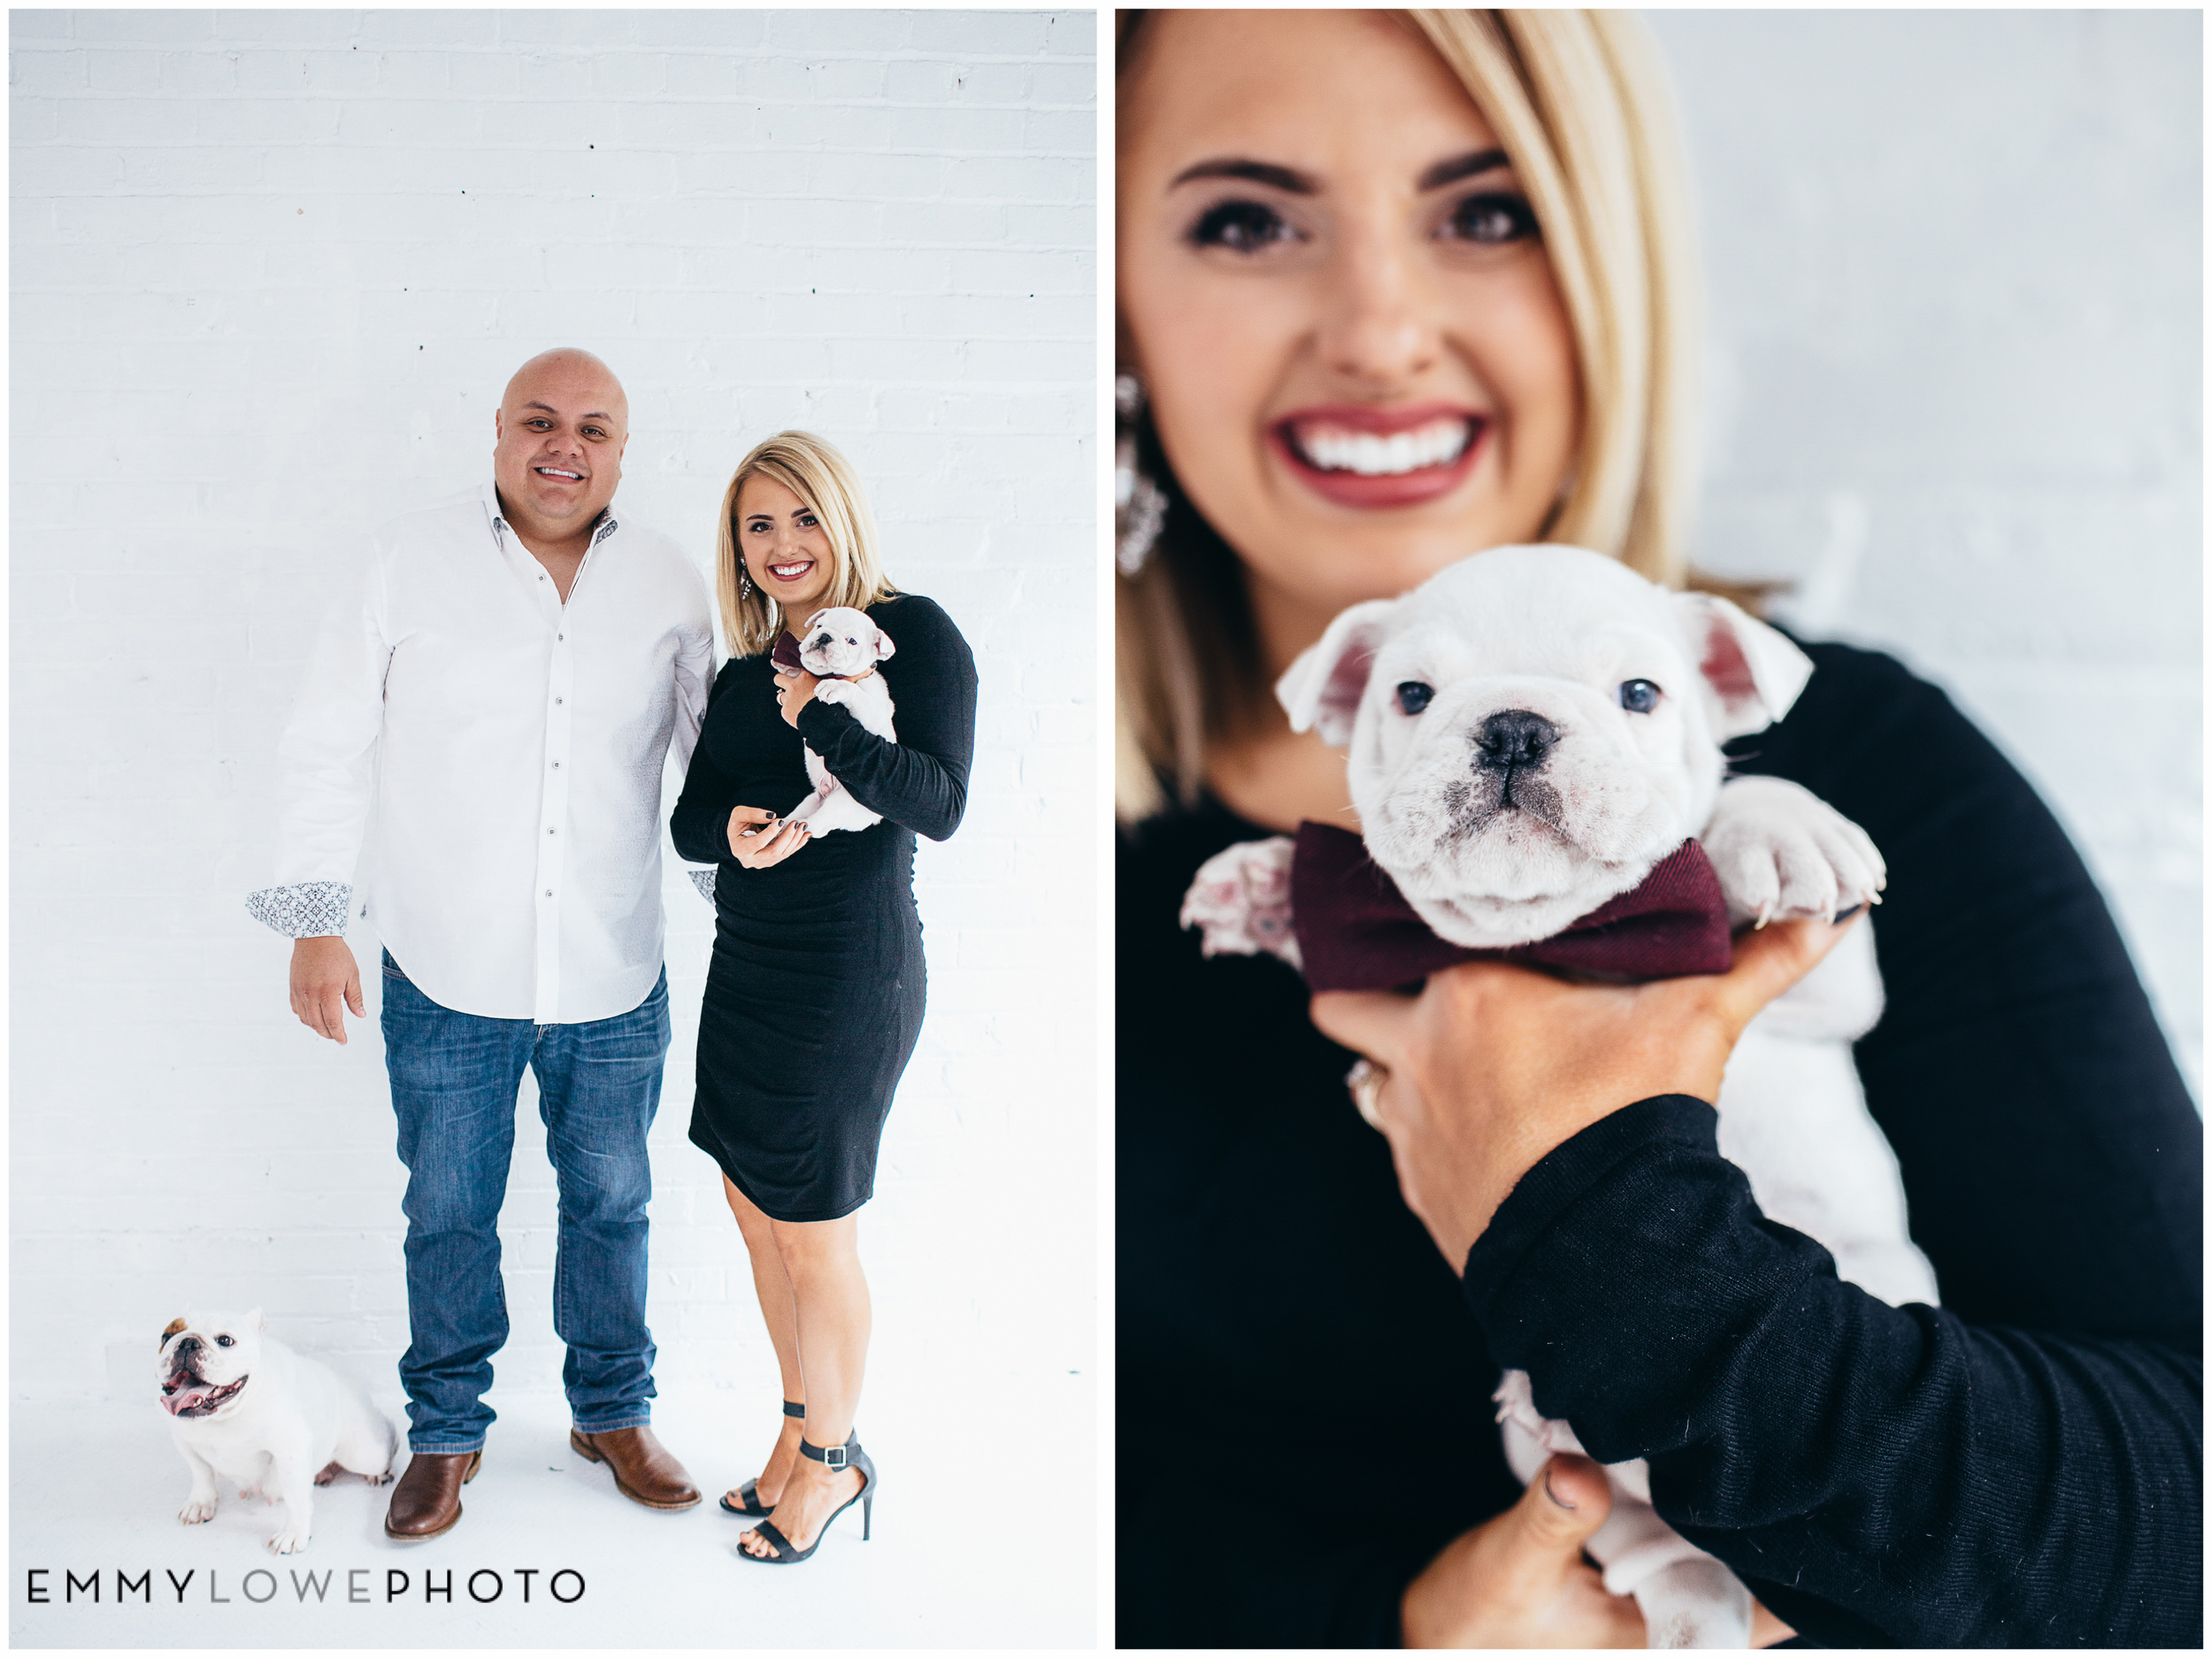 Emmy Lowe Photo | Salt Lake City | Family Studio Photographer